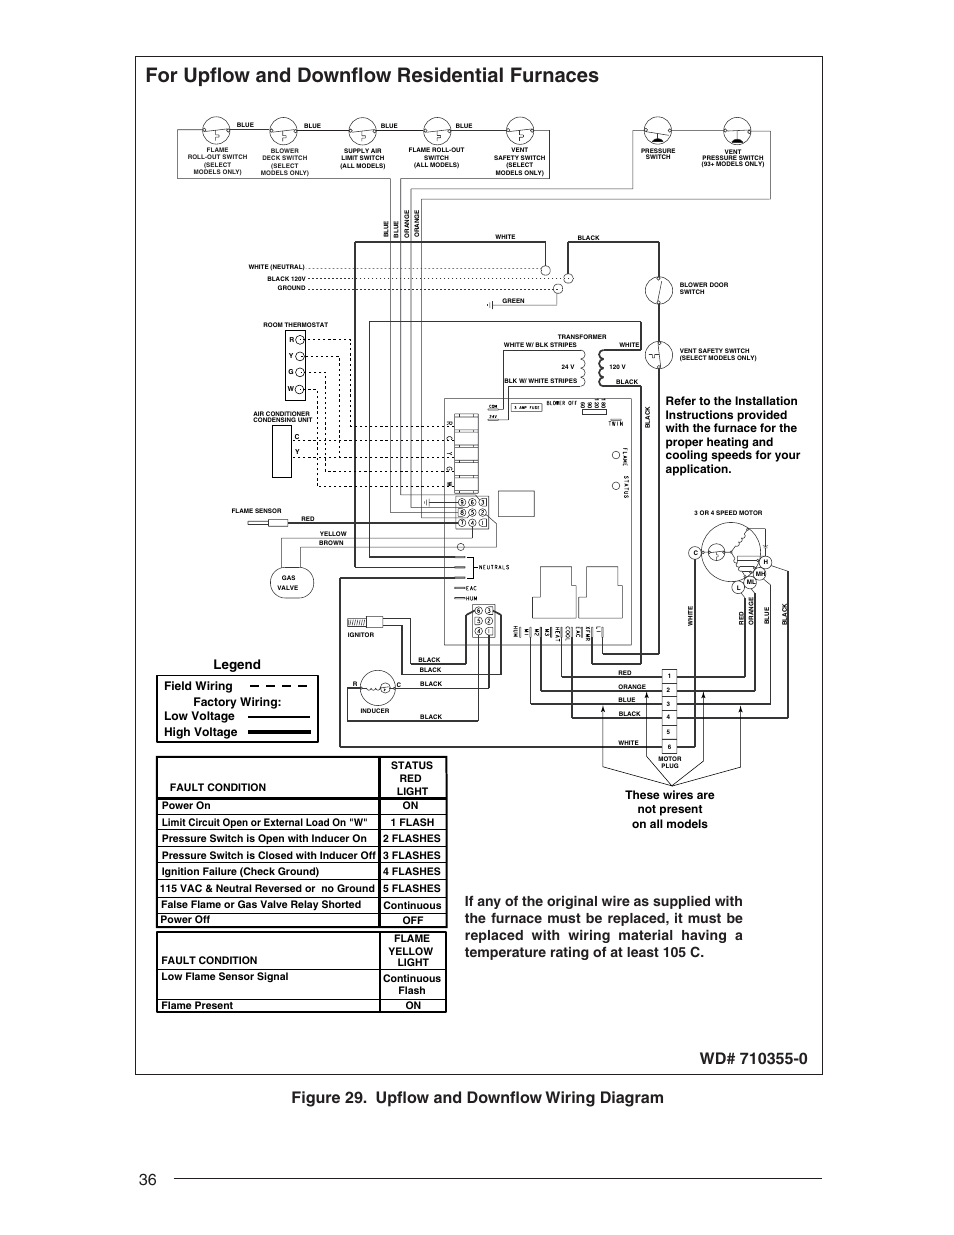 Nordyne Wiring Diagram For Gb5bv T36k B Schematic Diagrams Thermostat B3bmo24 House Symbols U2022